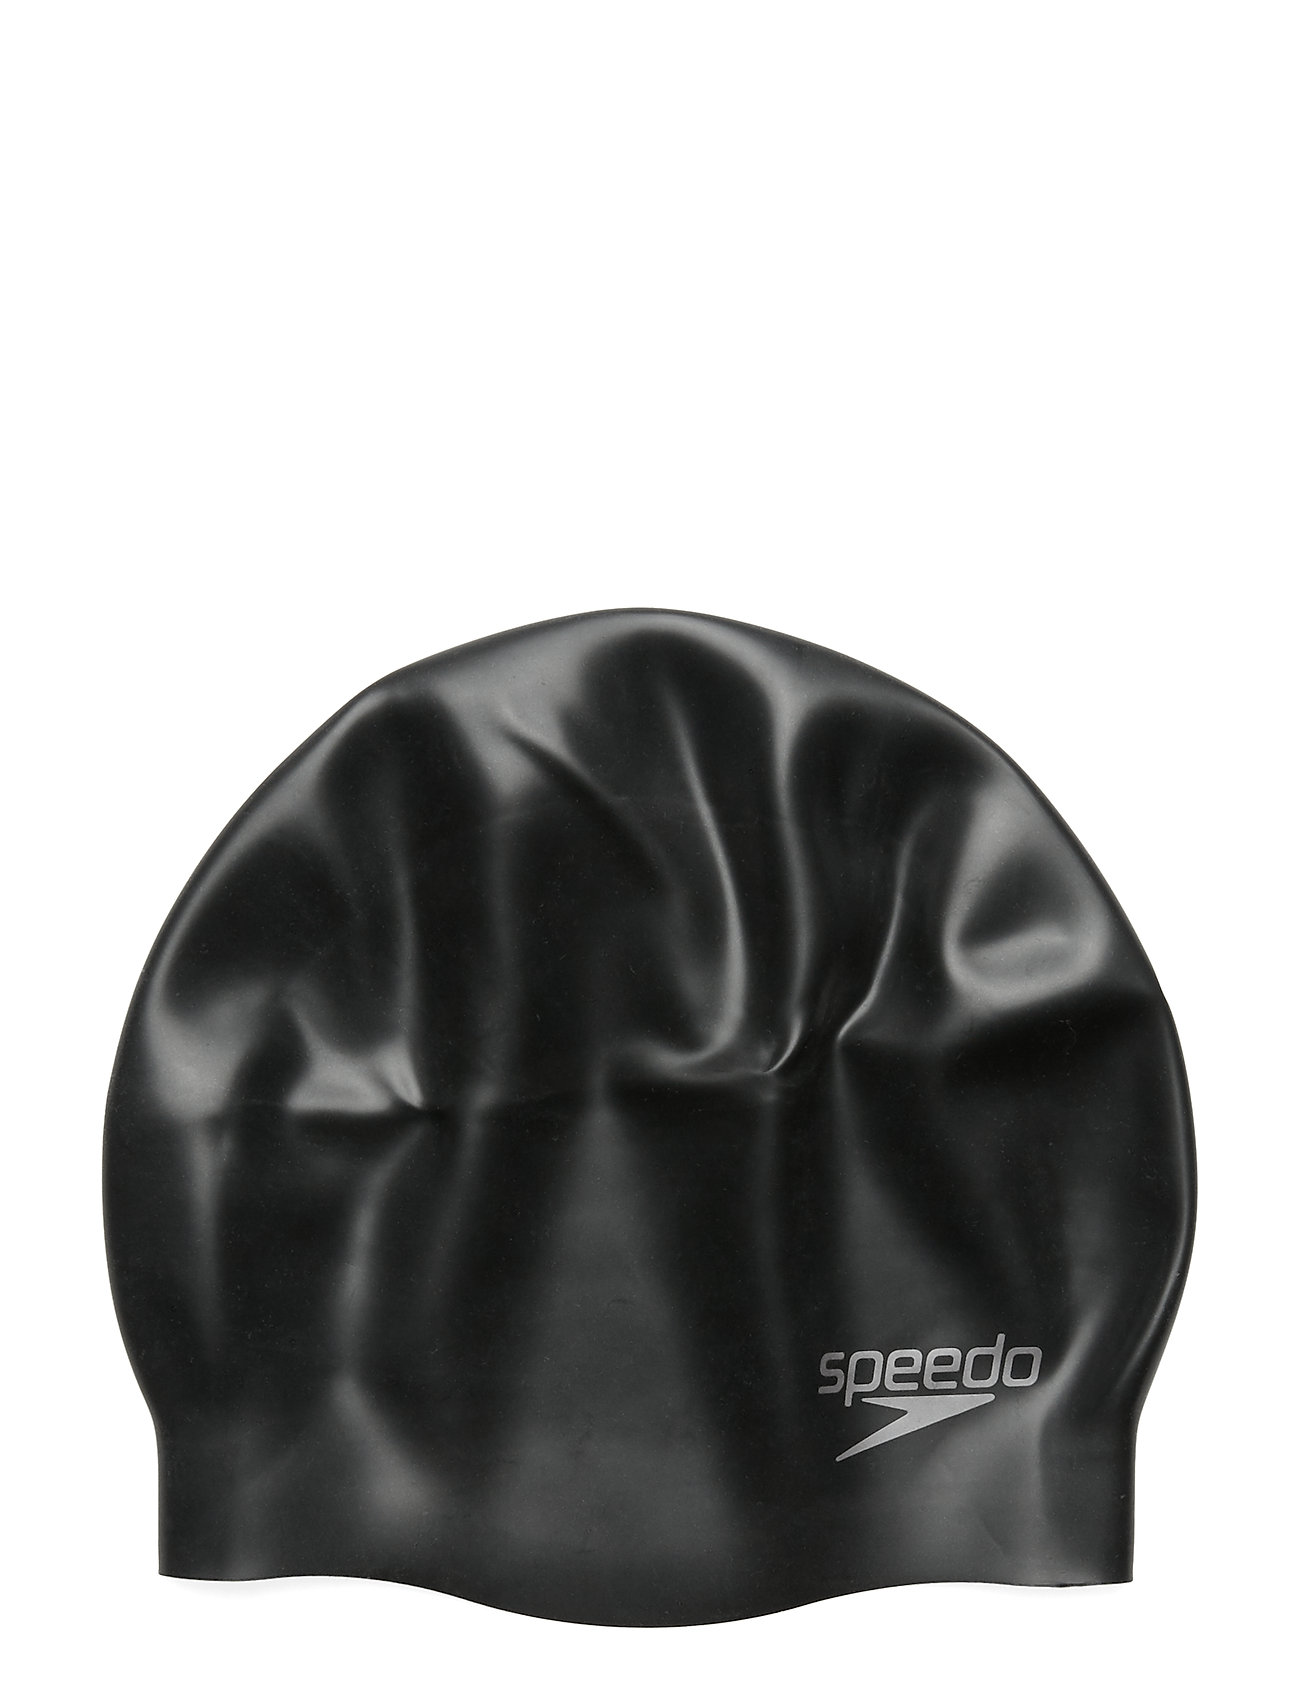 Image of Speedo Silicon Moulded Cap Au, Whi Mop Accessories Sports Equipment Other Sort Speedo (3378391367)